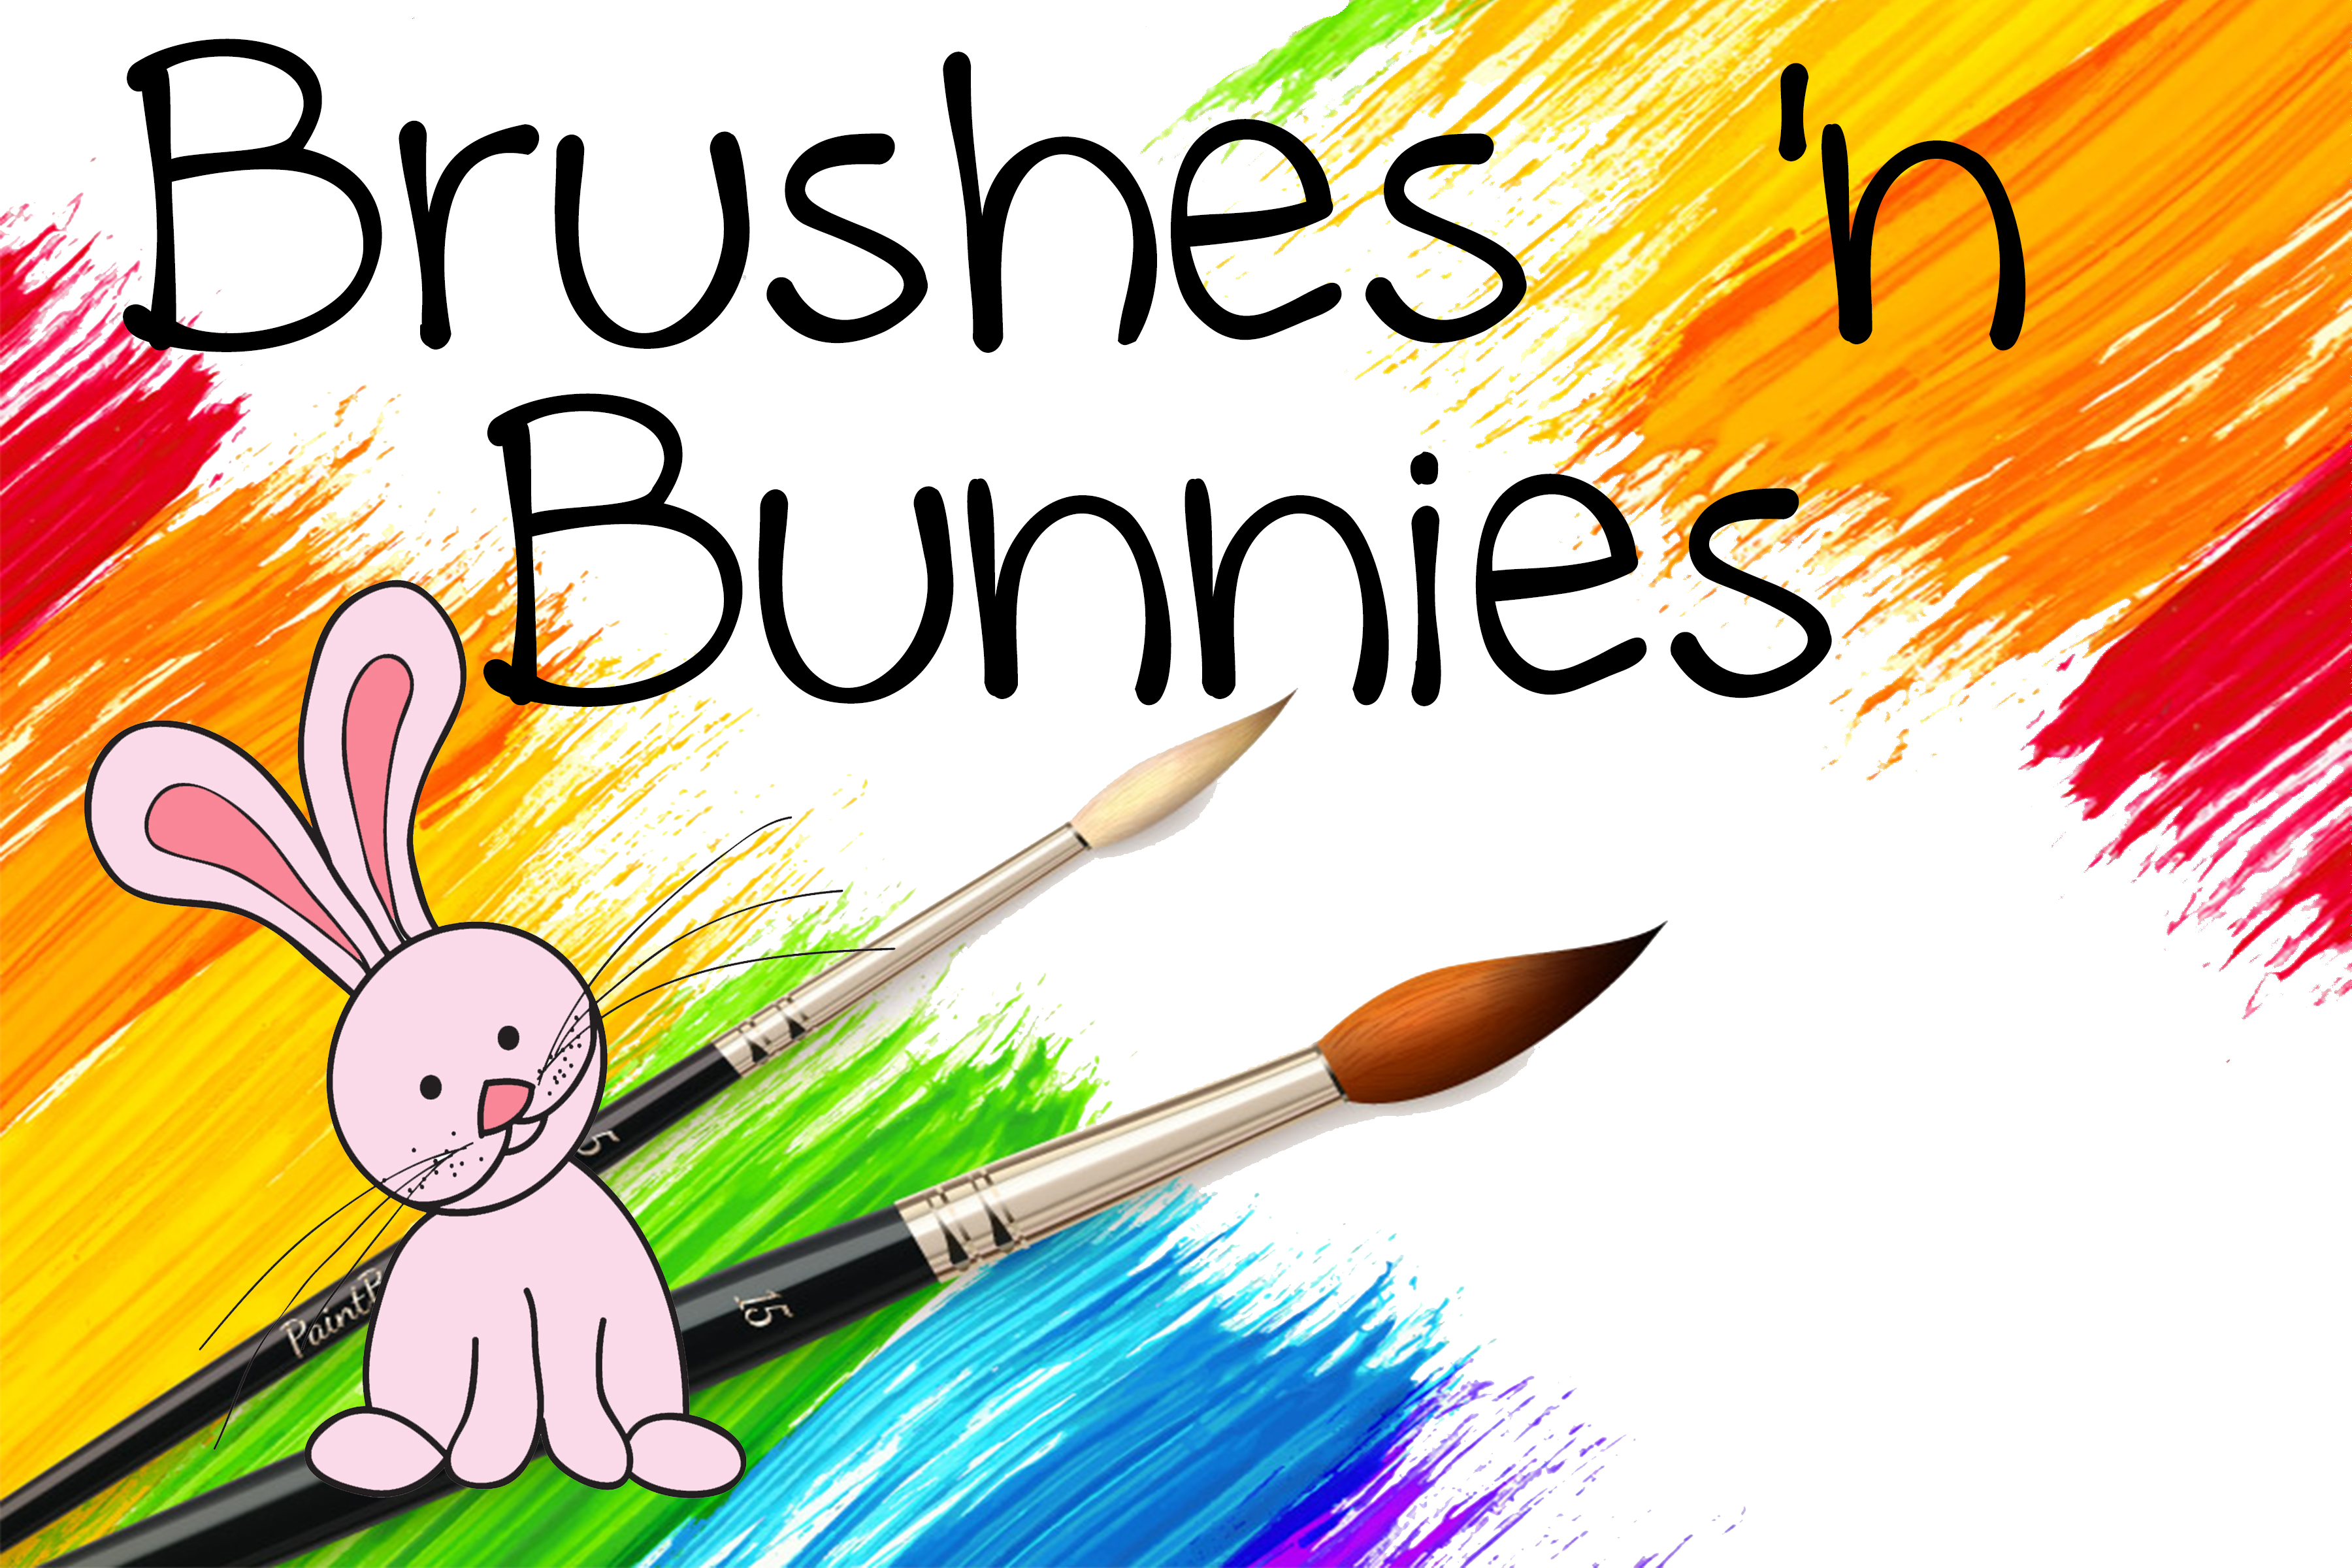 Brushes 'n Bunnies